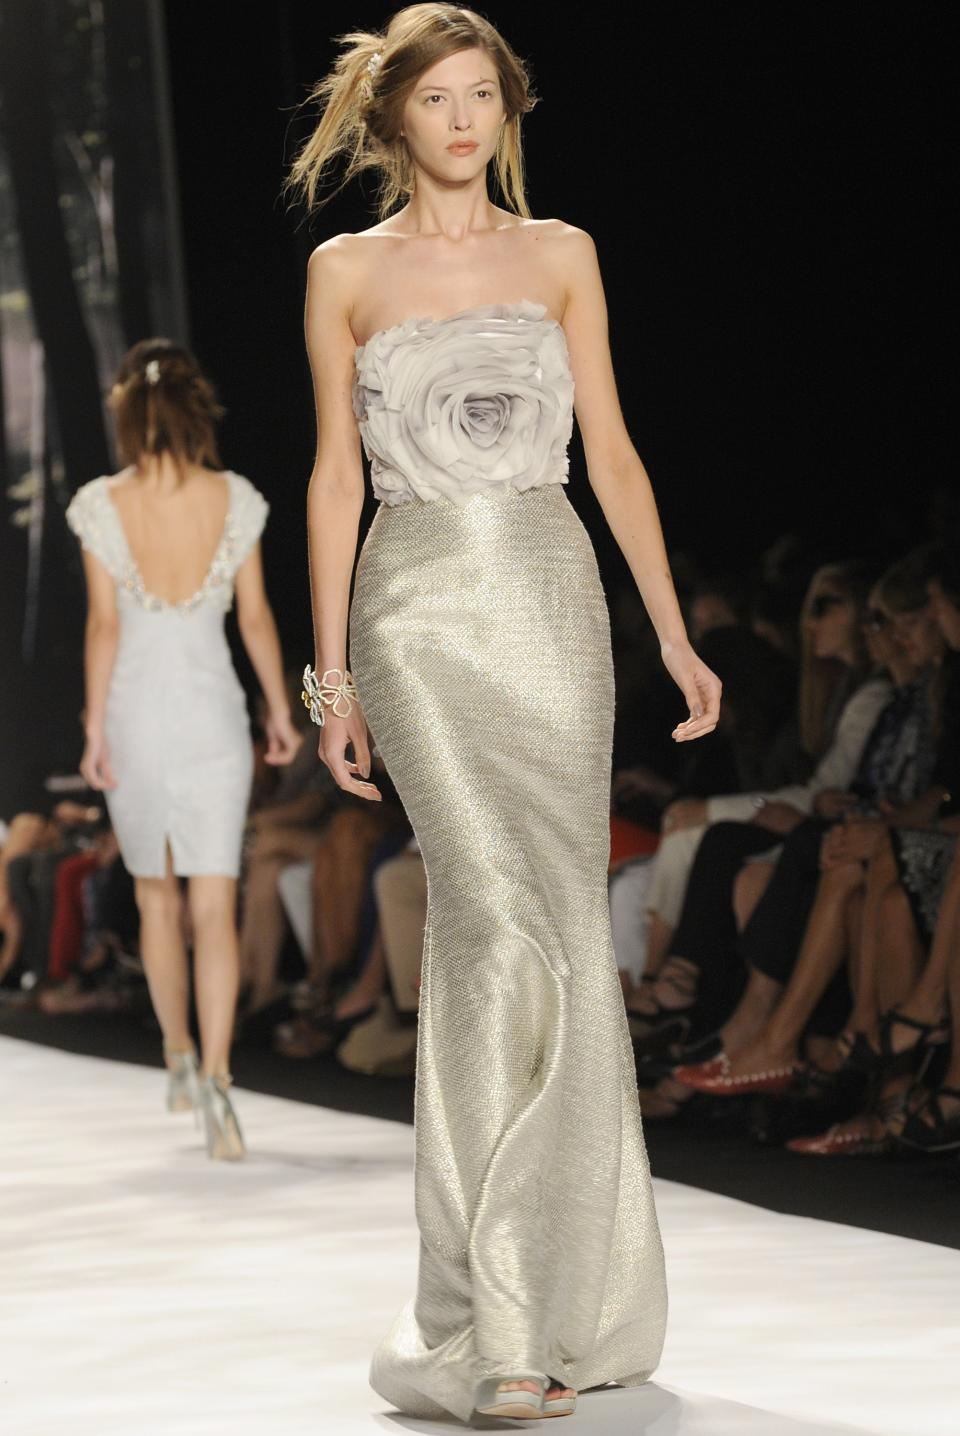 The Badgley Mischka Spring 2013 collection is modeled during Fashion Week, Tuesday, Sept. 11, 2012, in New York. (AP Photo/ Louis Lanzano)